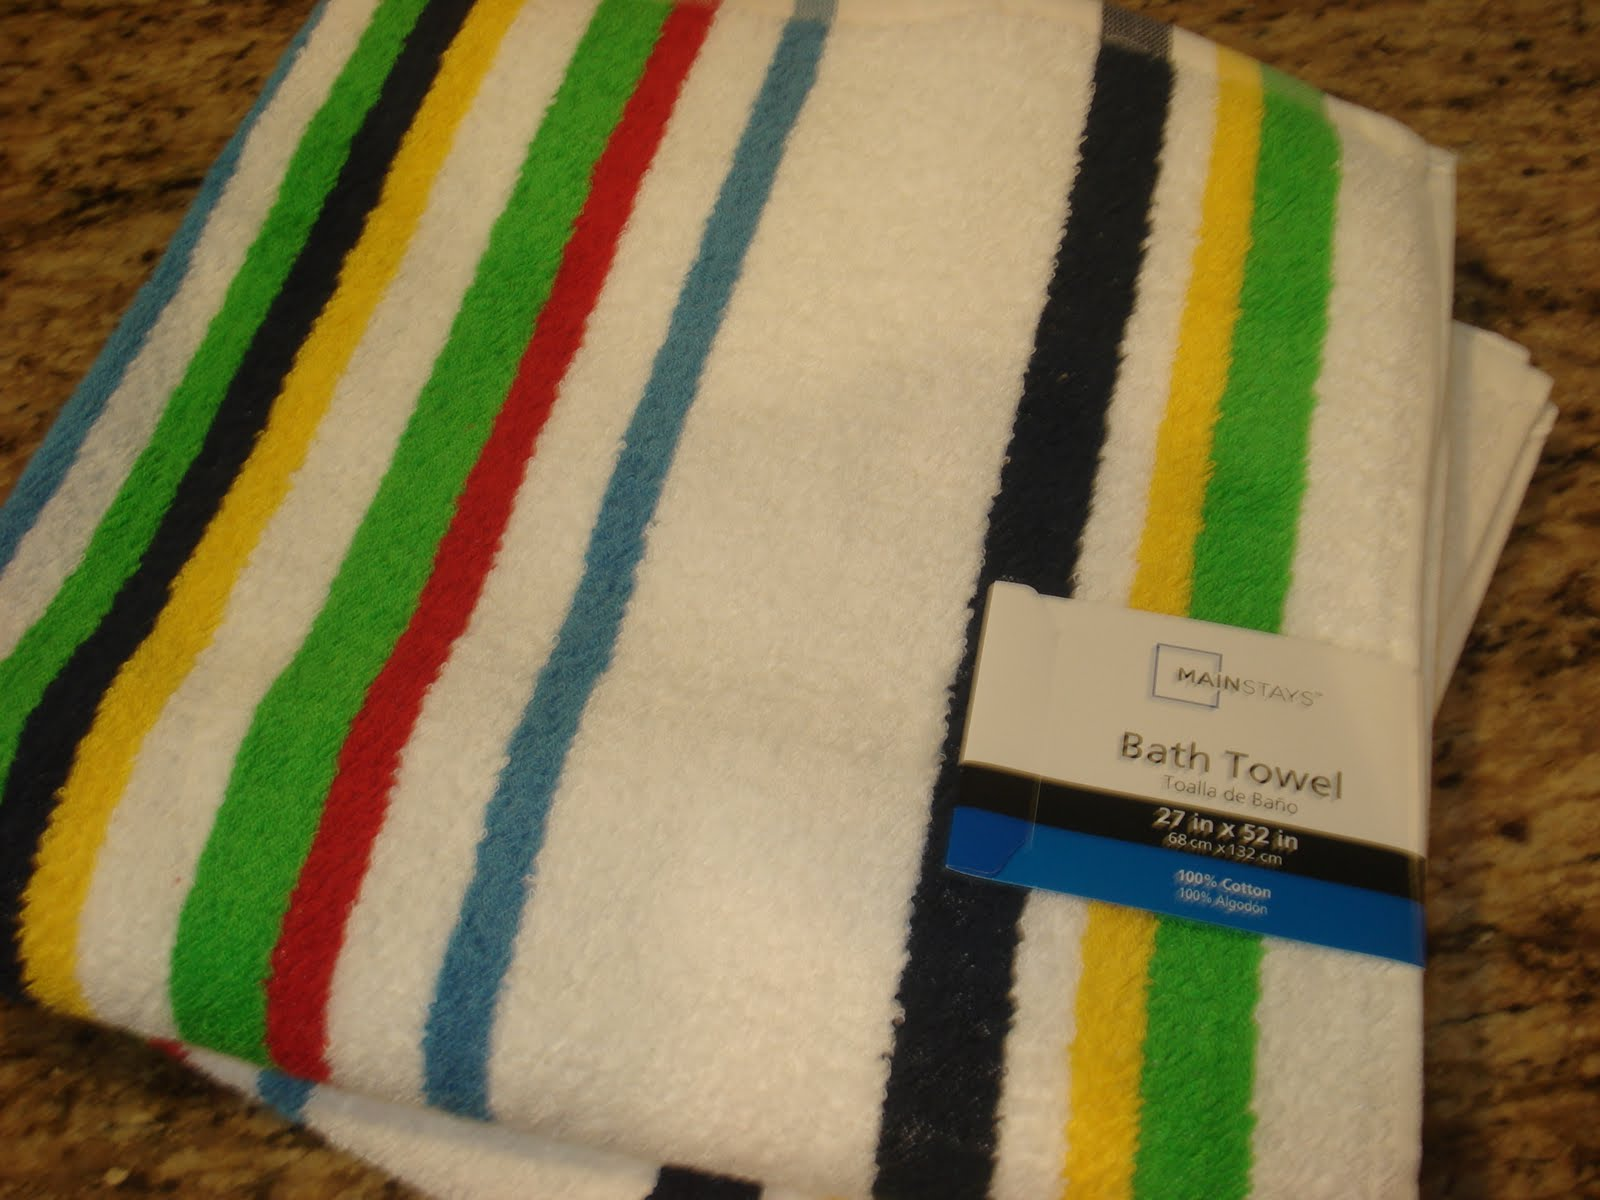 Do it yourself duo fun findmmer supply ive been on the lookout for cute summer outdoor towels at a good pricethough they are marked as bath towels these are nice and big and so cute solutioingenieria Image collections